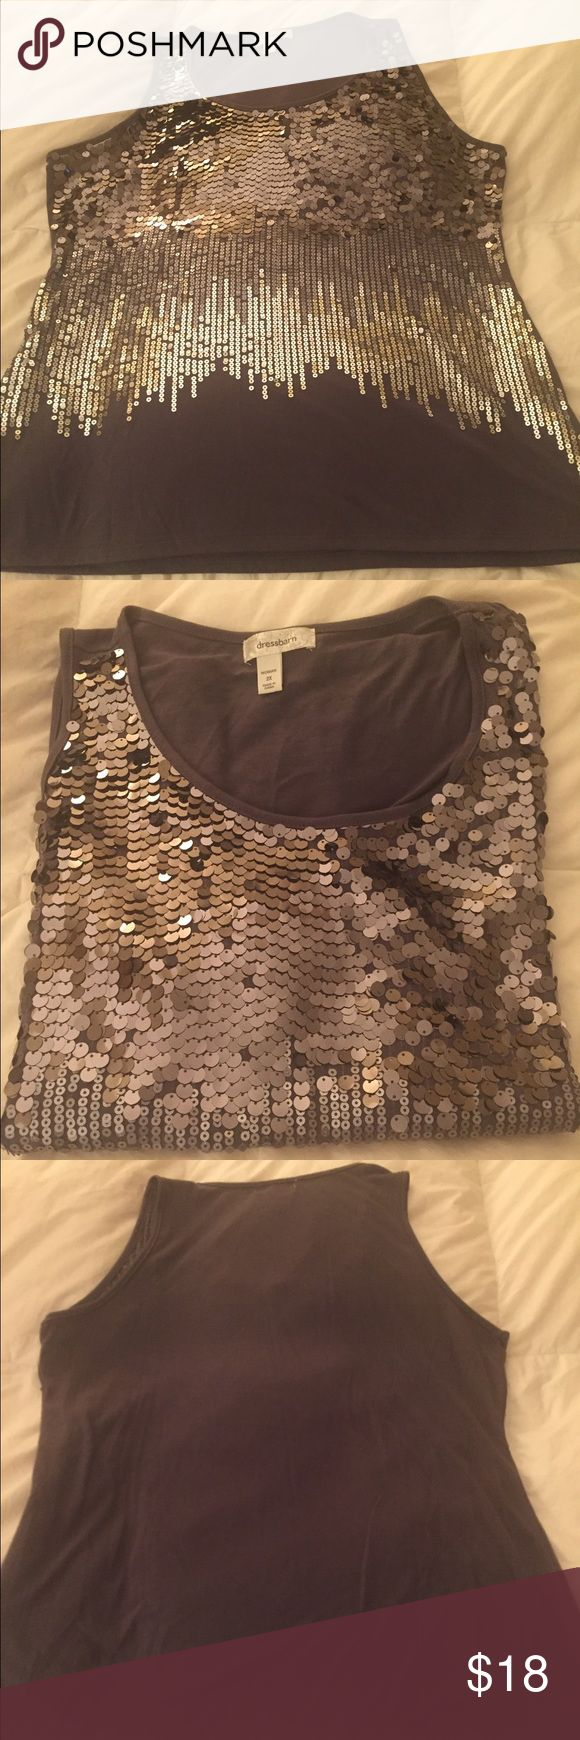 Beautiful Sequins Tank Top Beautiful Sequins dressy tank top from Dress Barn.  Grayish in color-Size 2X Woman. Great for New Years Eve!😃 Price negotiable. Make an offer! Dress Barn Tops Tank Tops